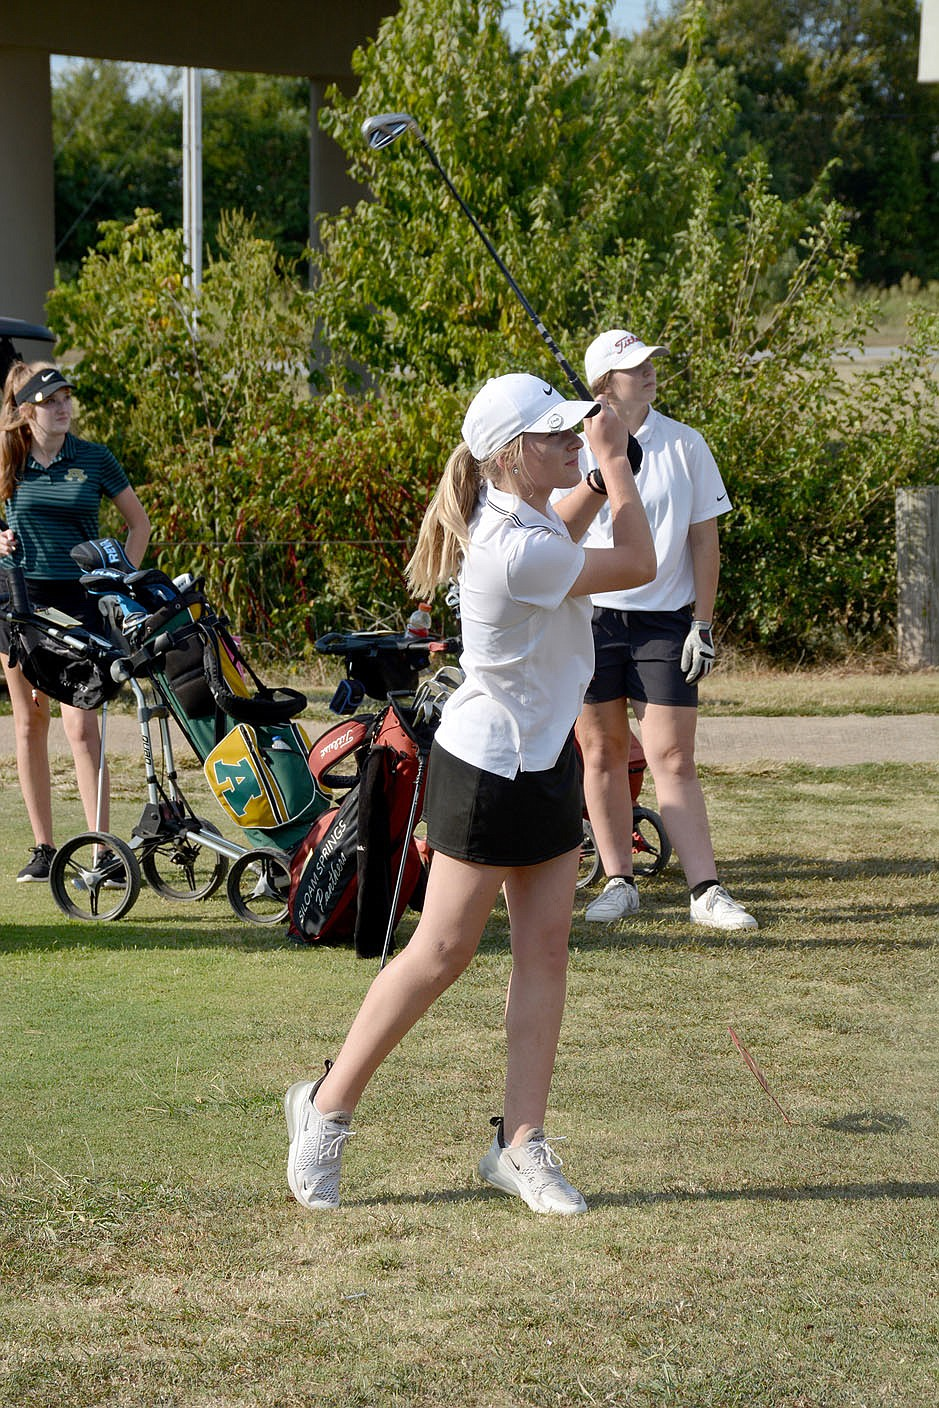 Graham Thomas/Herald-Leader Siloam Springs golfer Baylee Morris watches after she hits a tee shot as teammate Brooke Smith looks on during Monday's match at The Course at Sager's Crossing.